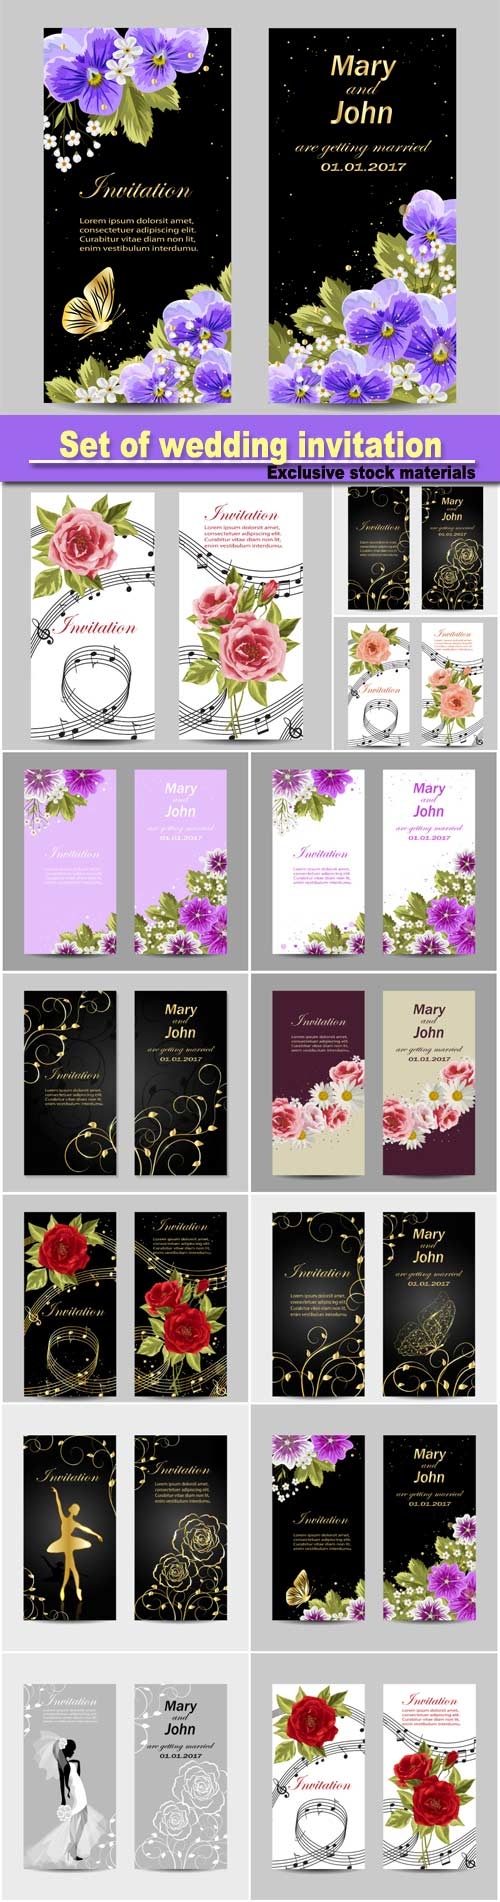 wedding invite background design%0A Set of wedding invitation cards design  beautiful flowers  vector  illustration Source  http